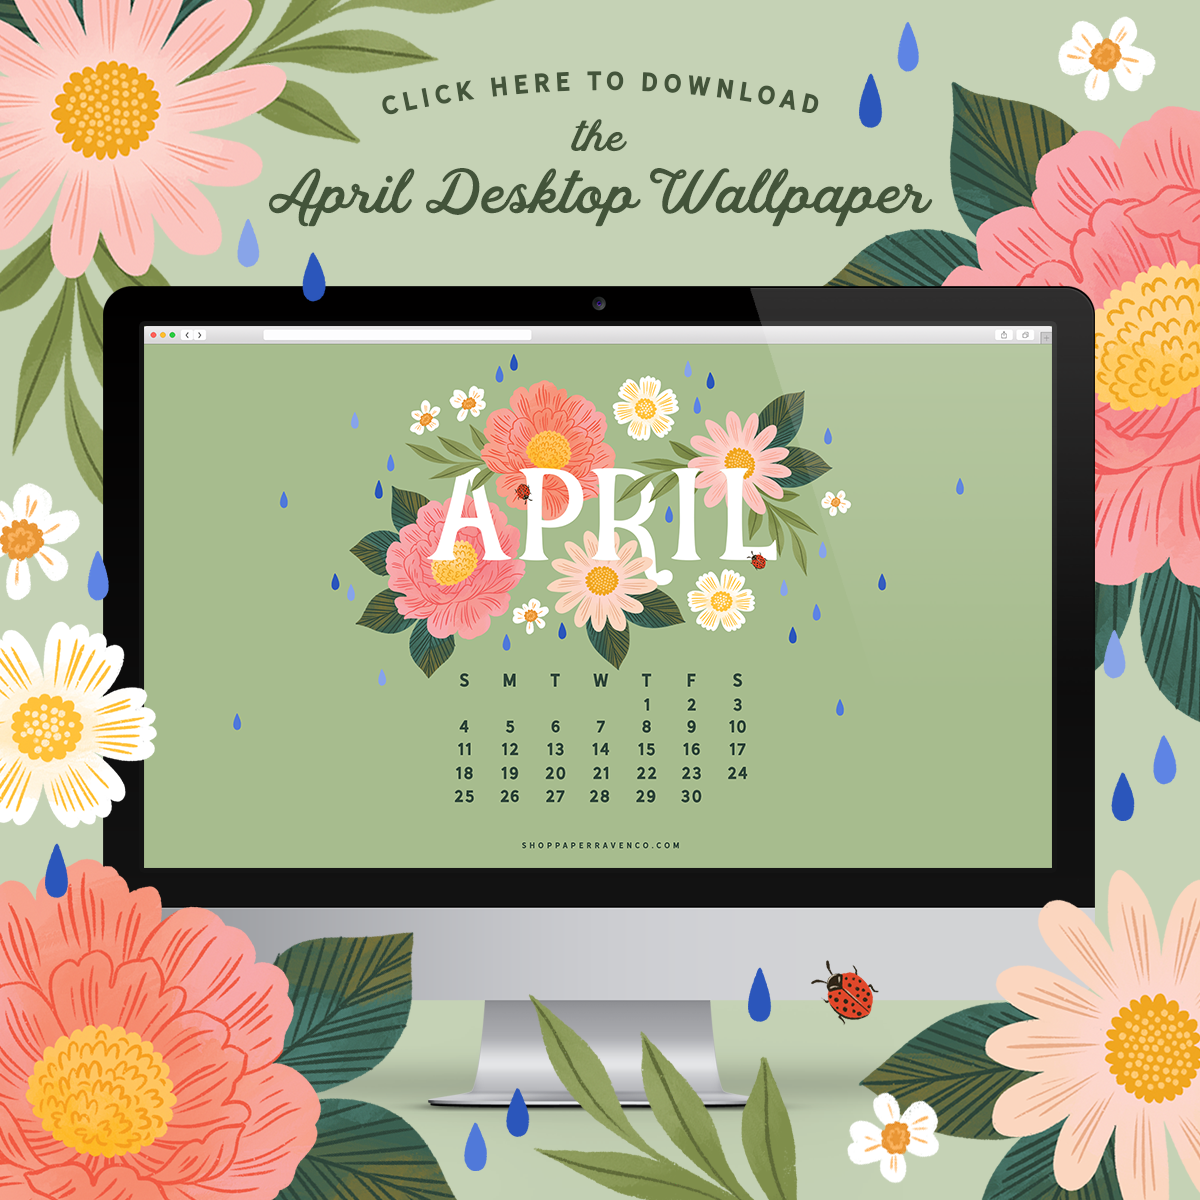 April 2021 Illustrated Desktop Wallpaper by Paper Raven Co. #dressyourtech #desktopwallpaper #desktopdownload